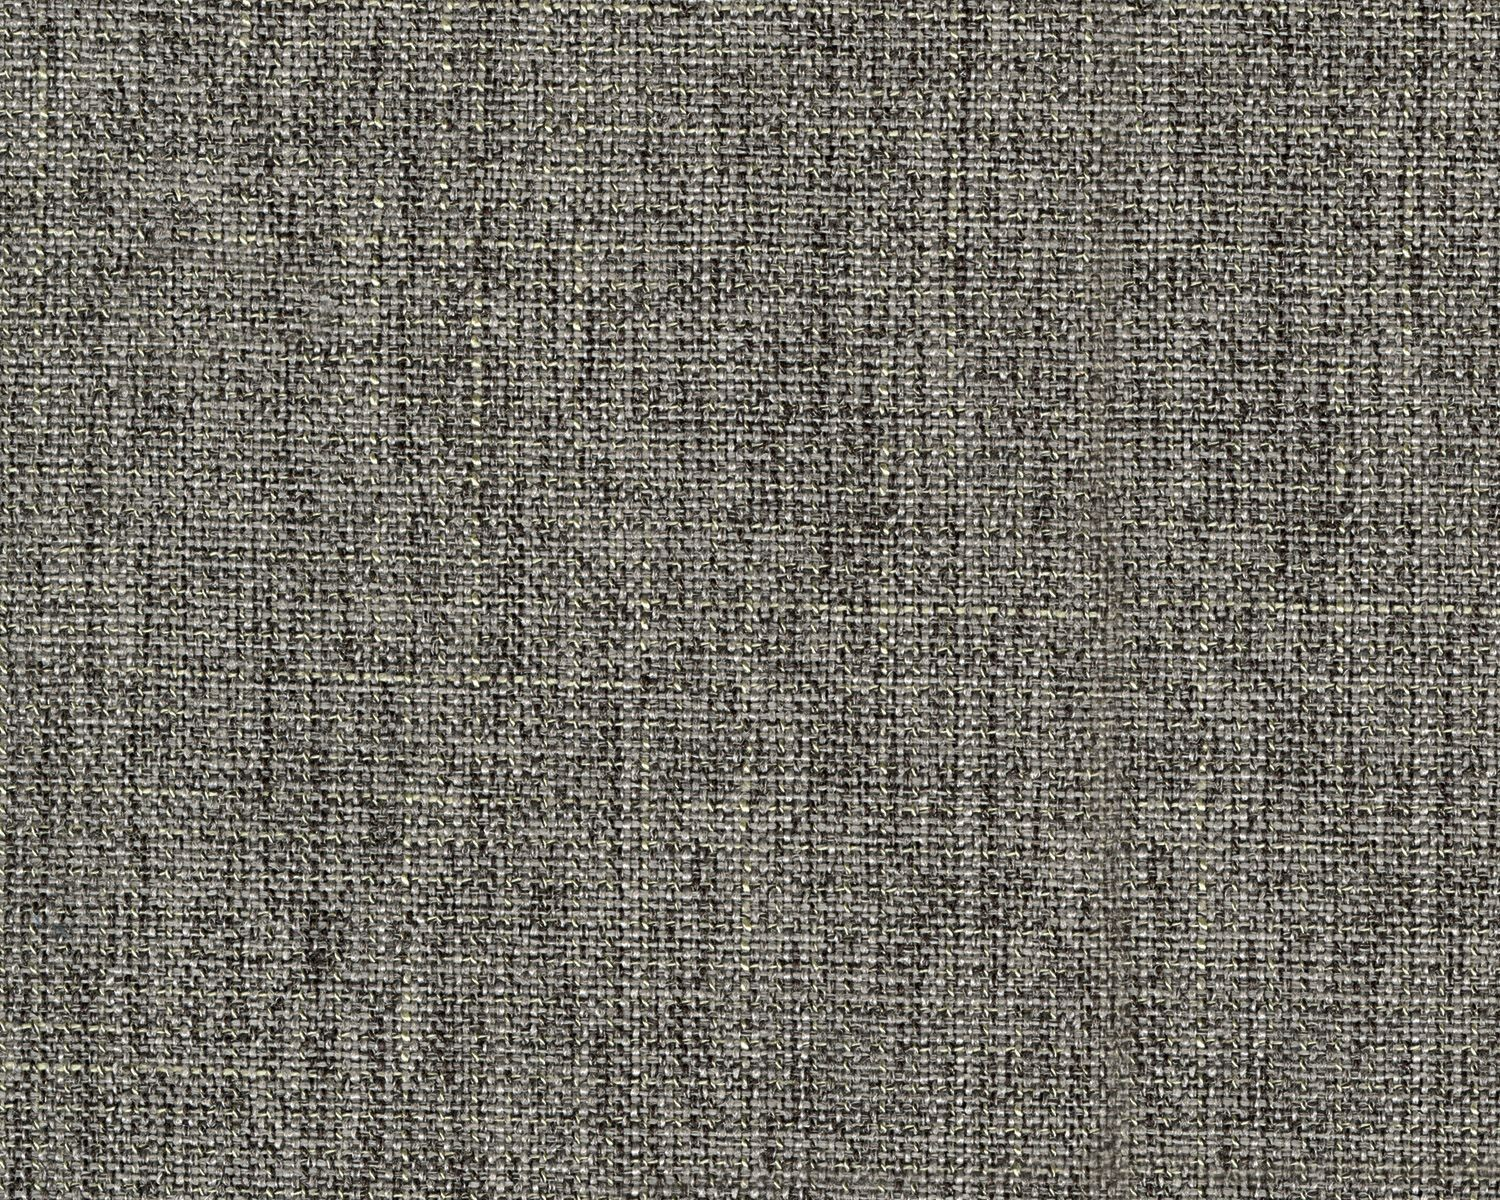 Ashley Furniture Fabric Swatches